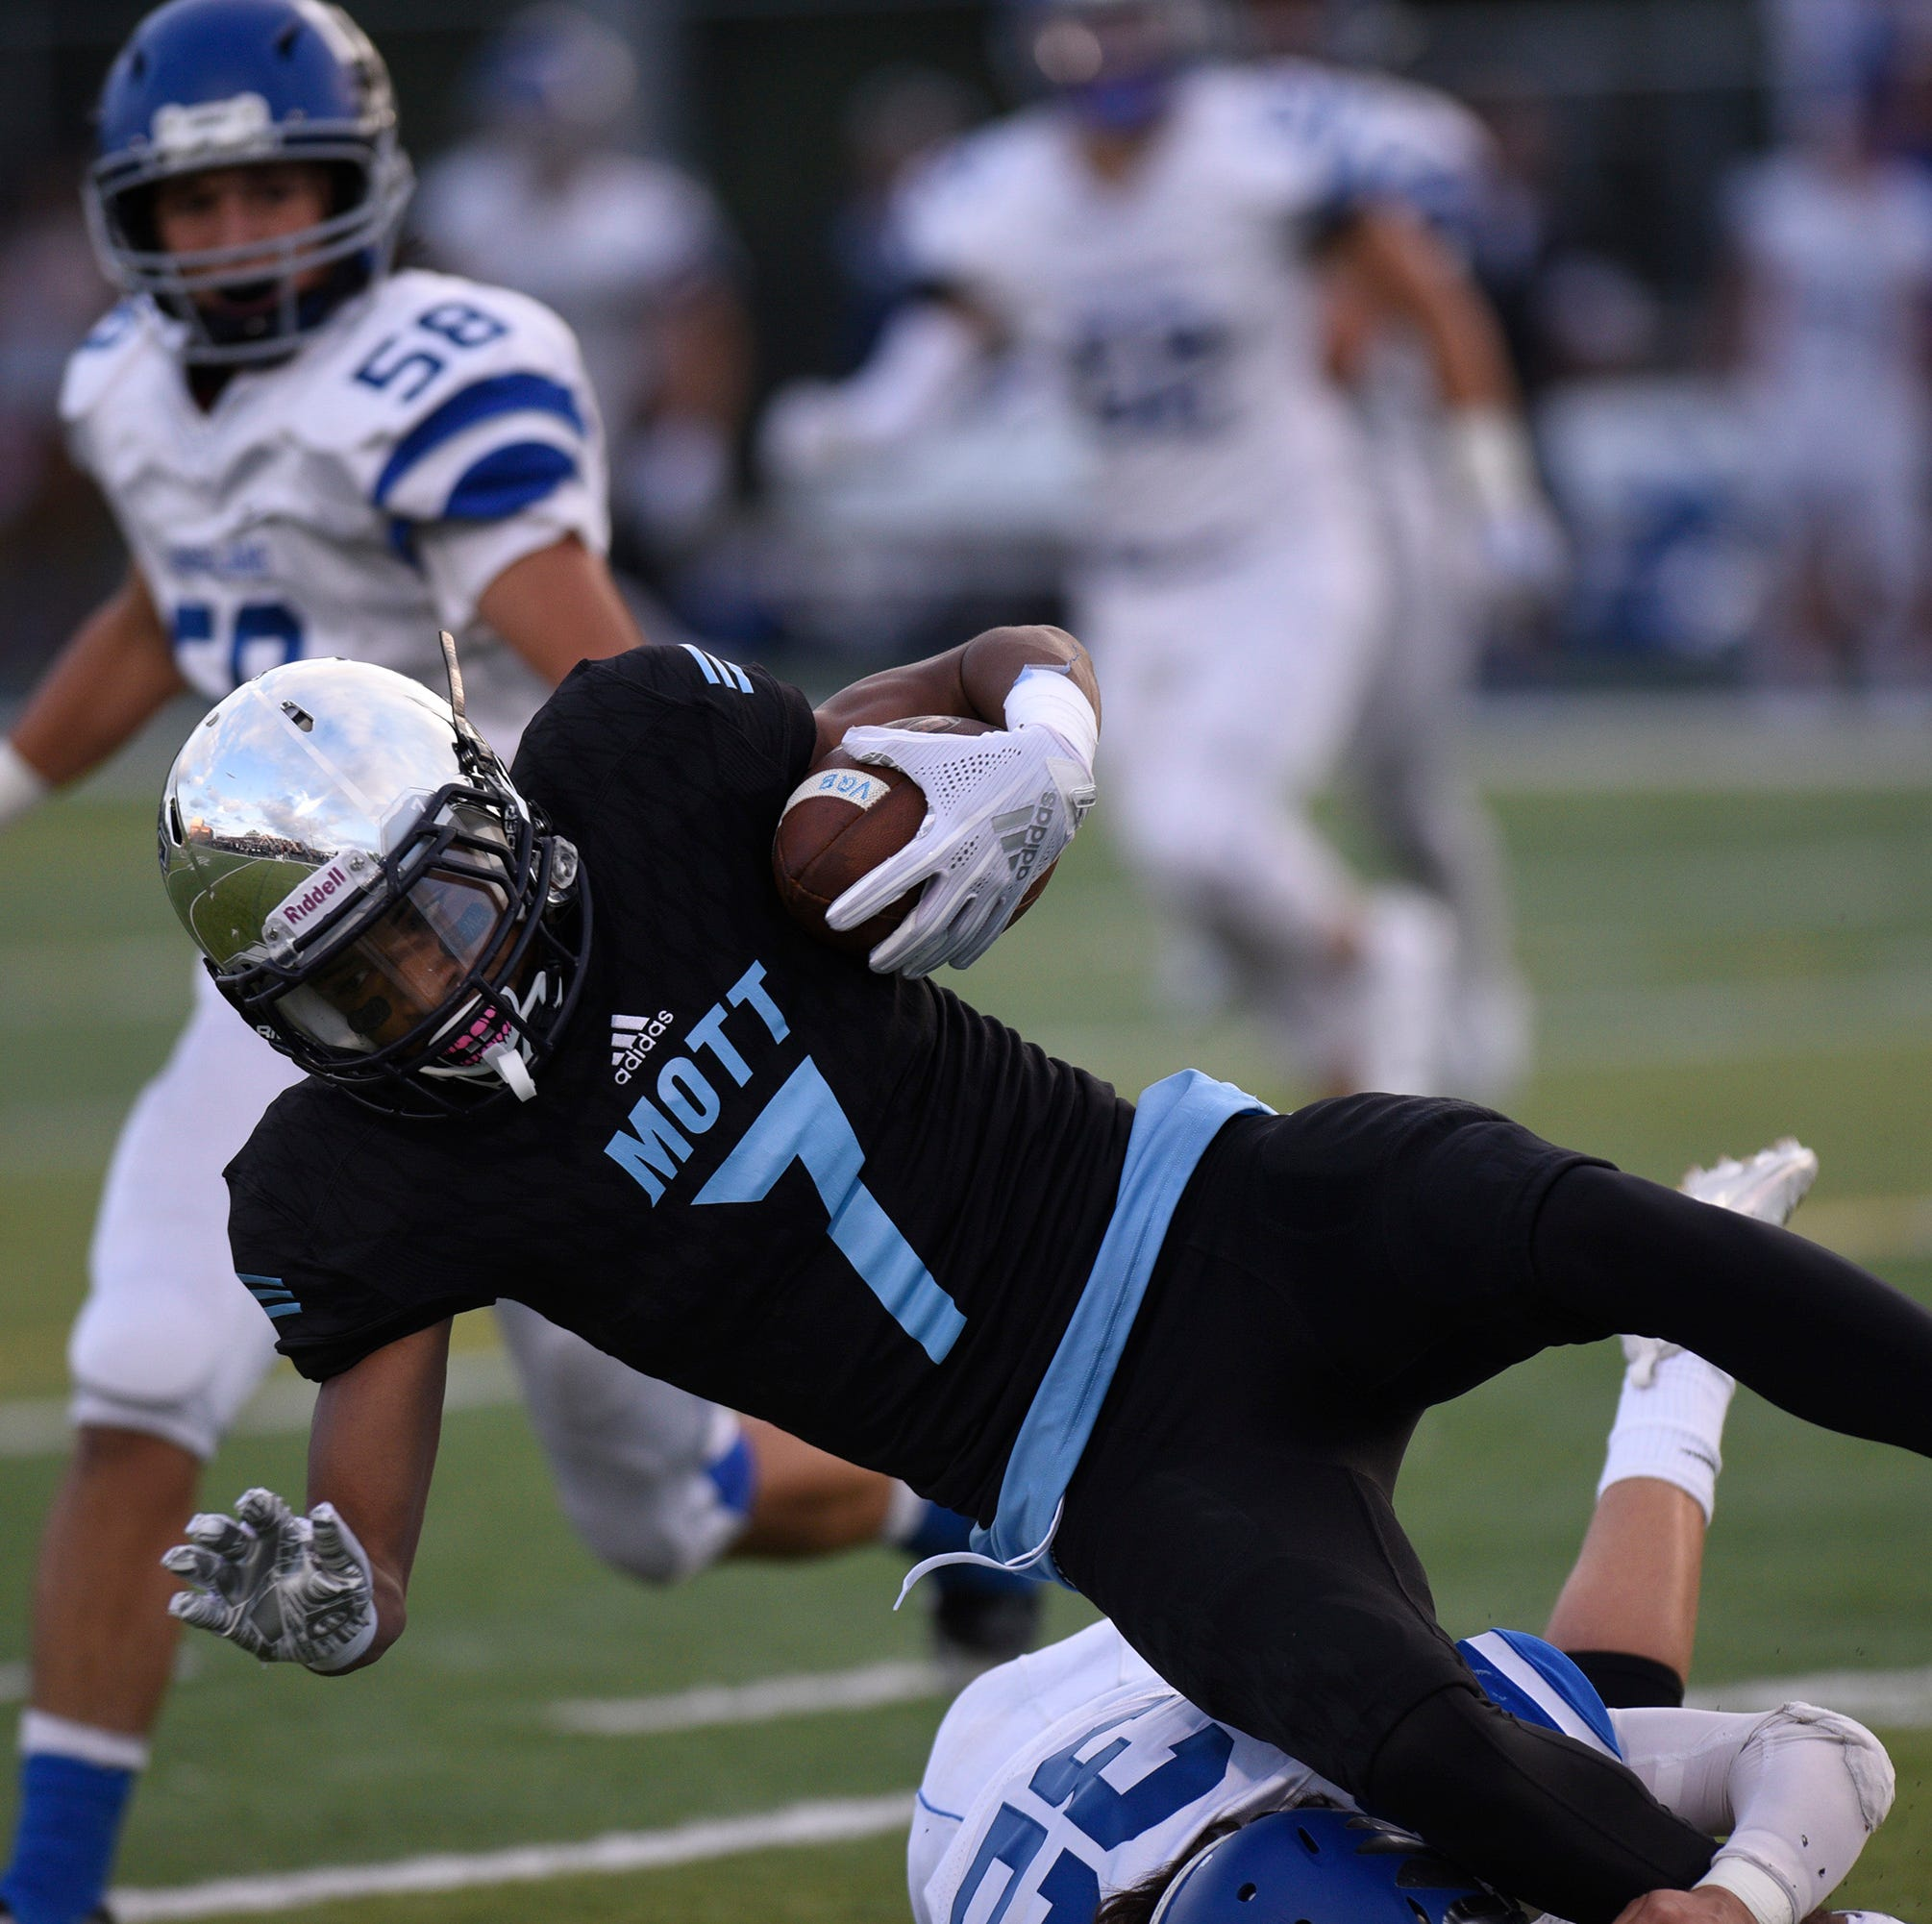 Waterford Mott defeats Lakeland 26-19